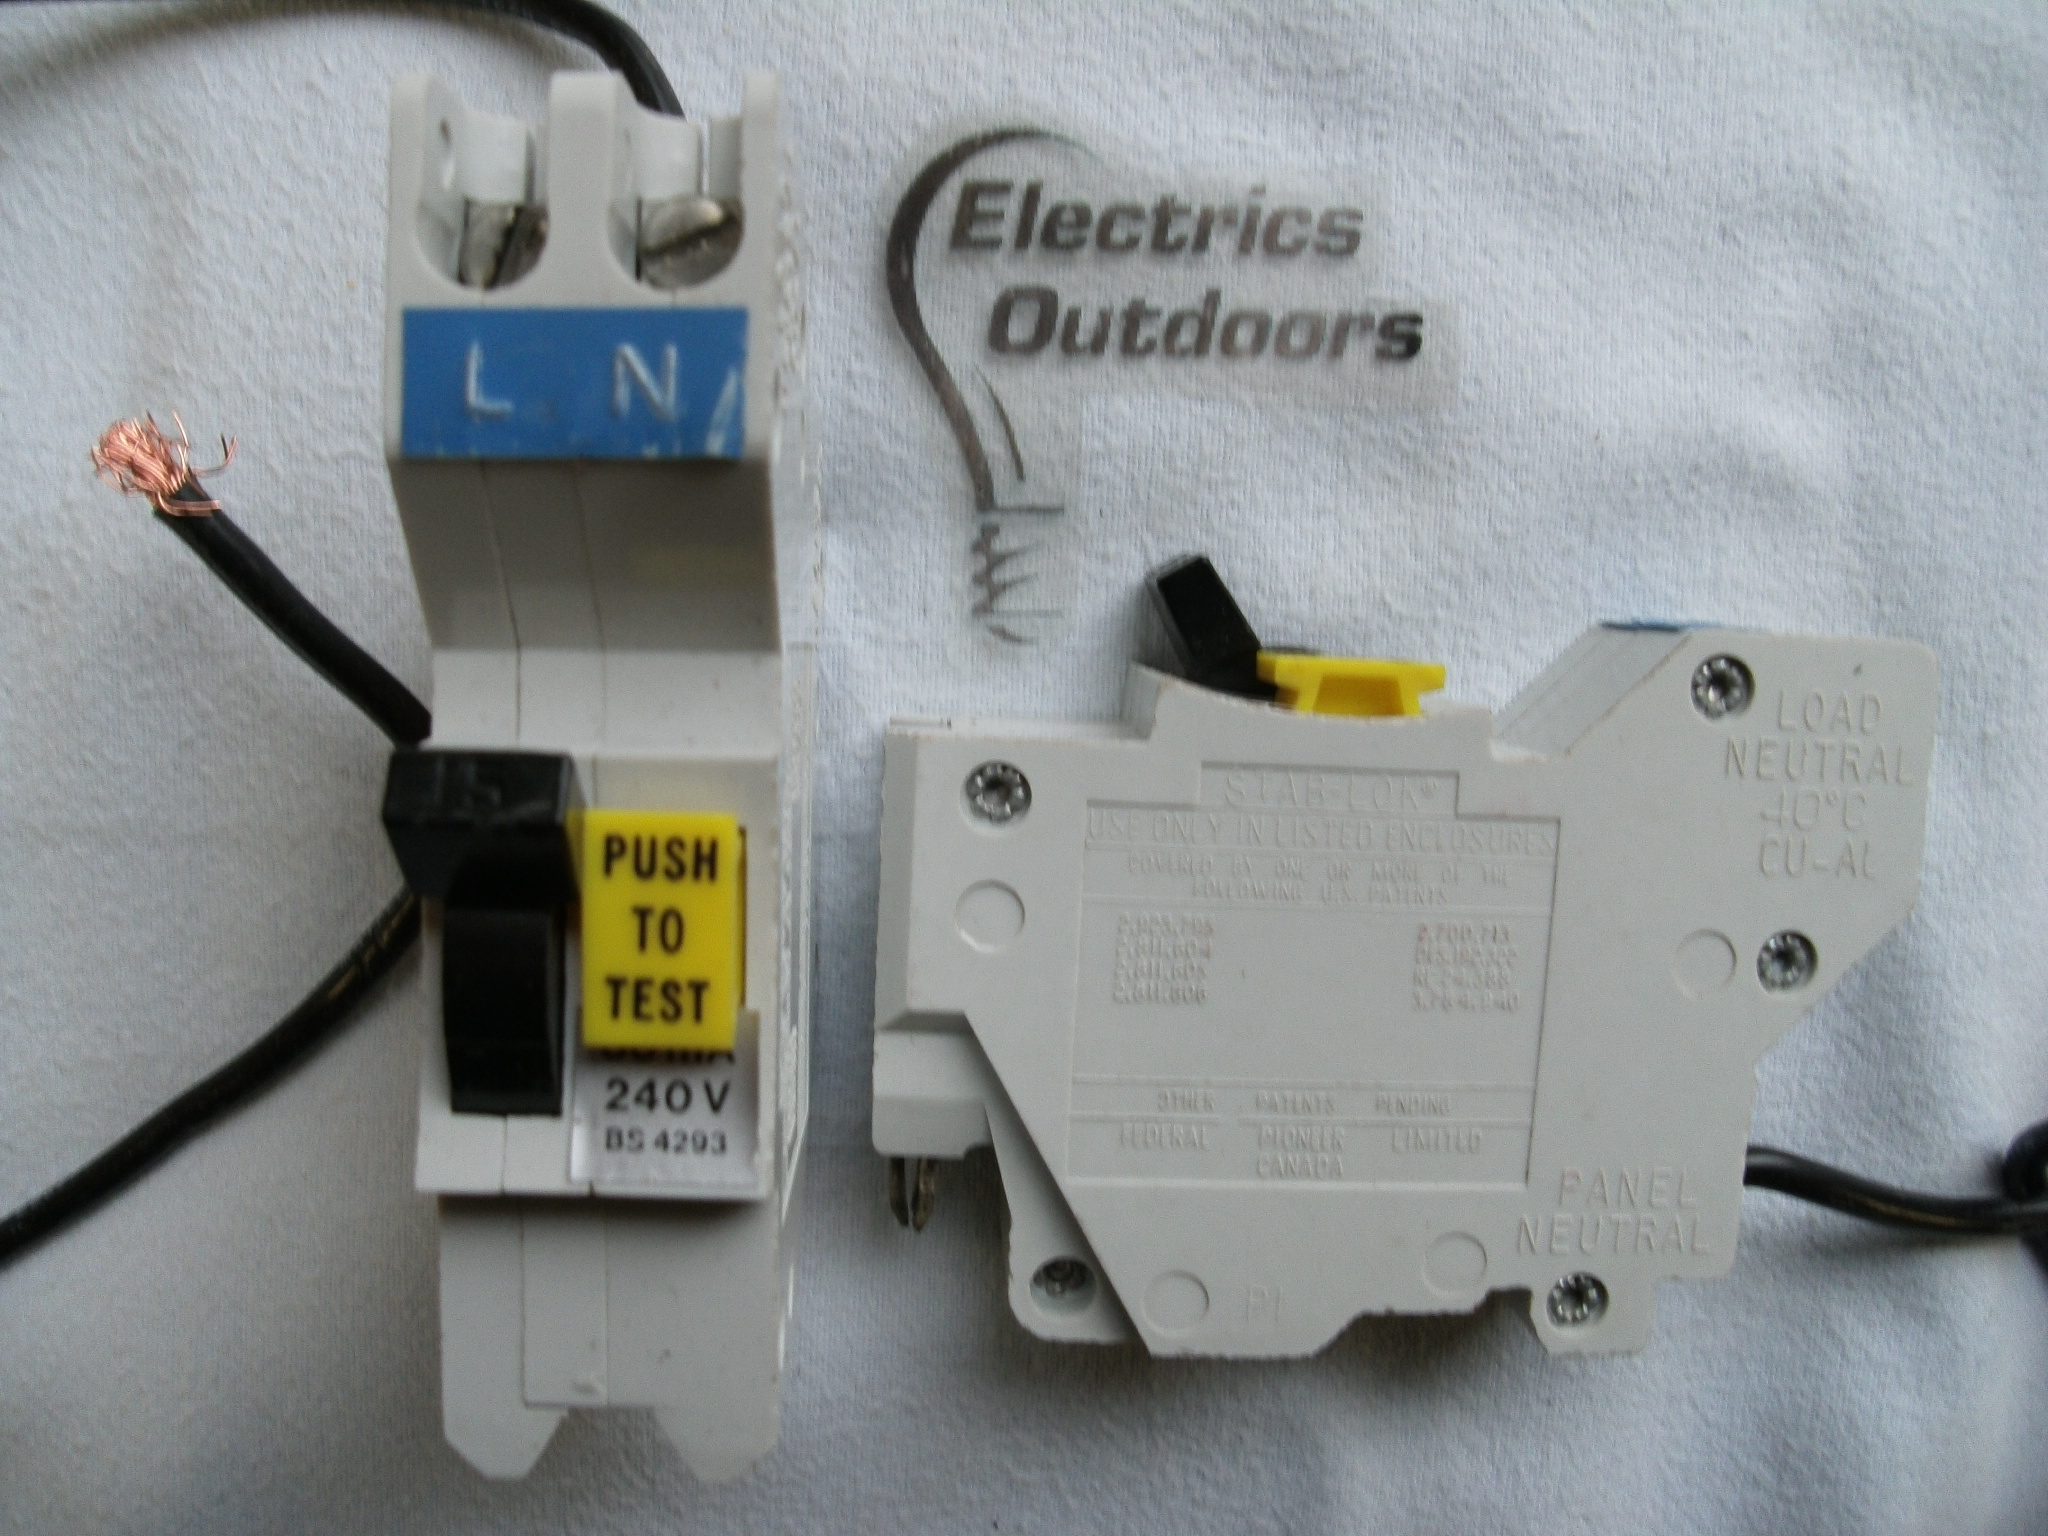 FEDERAL ELECTRIC STAB-LOK 15 AMP 30 mA RCBO RCD MCB CIRCUIT BREA